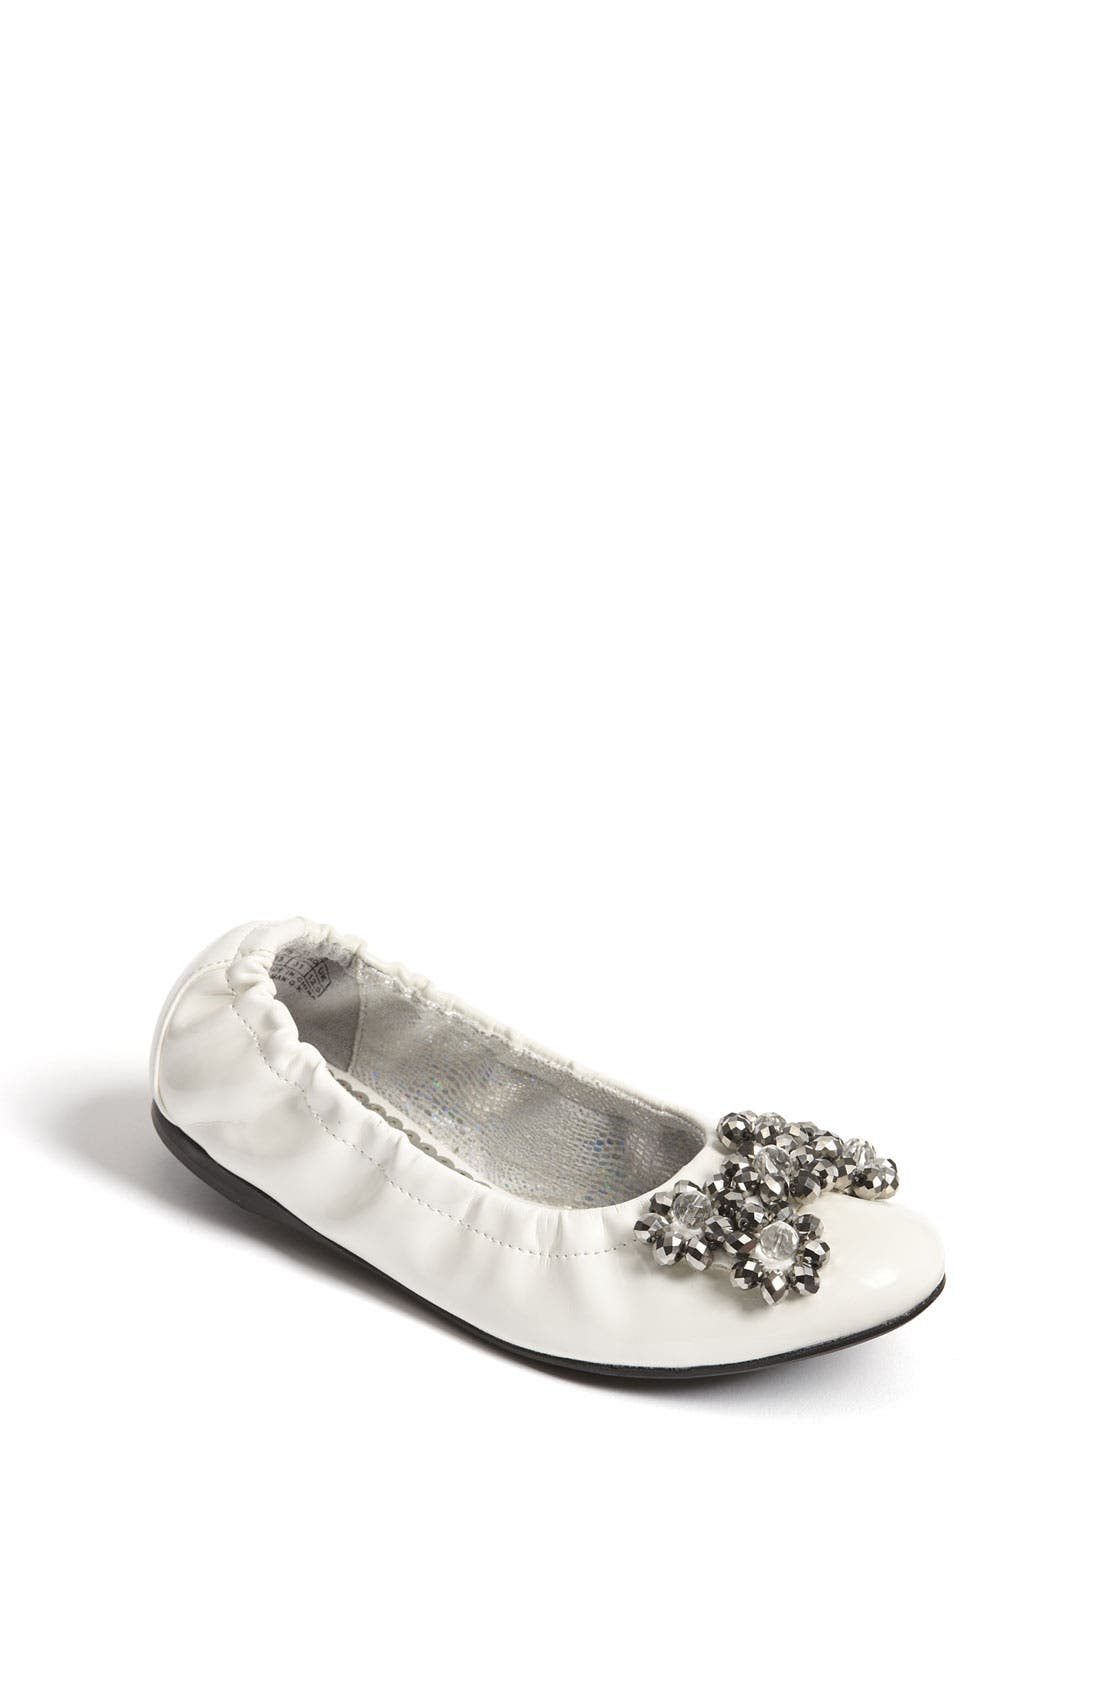 Alternate Image 1 Selected - Stuart Weitzman 'Dazzle' Flat (Toddler, Little Kid & Big Kid)